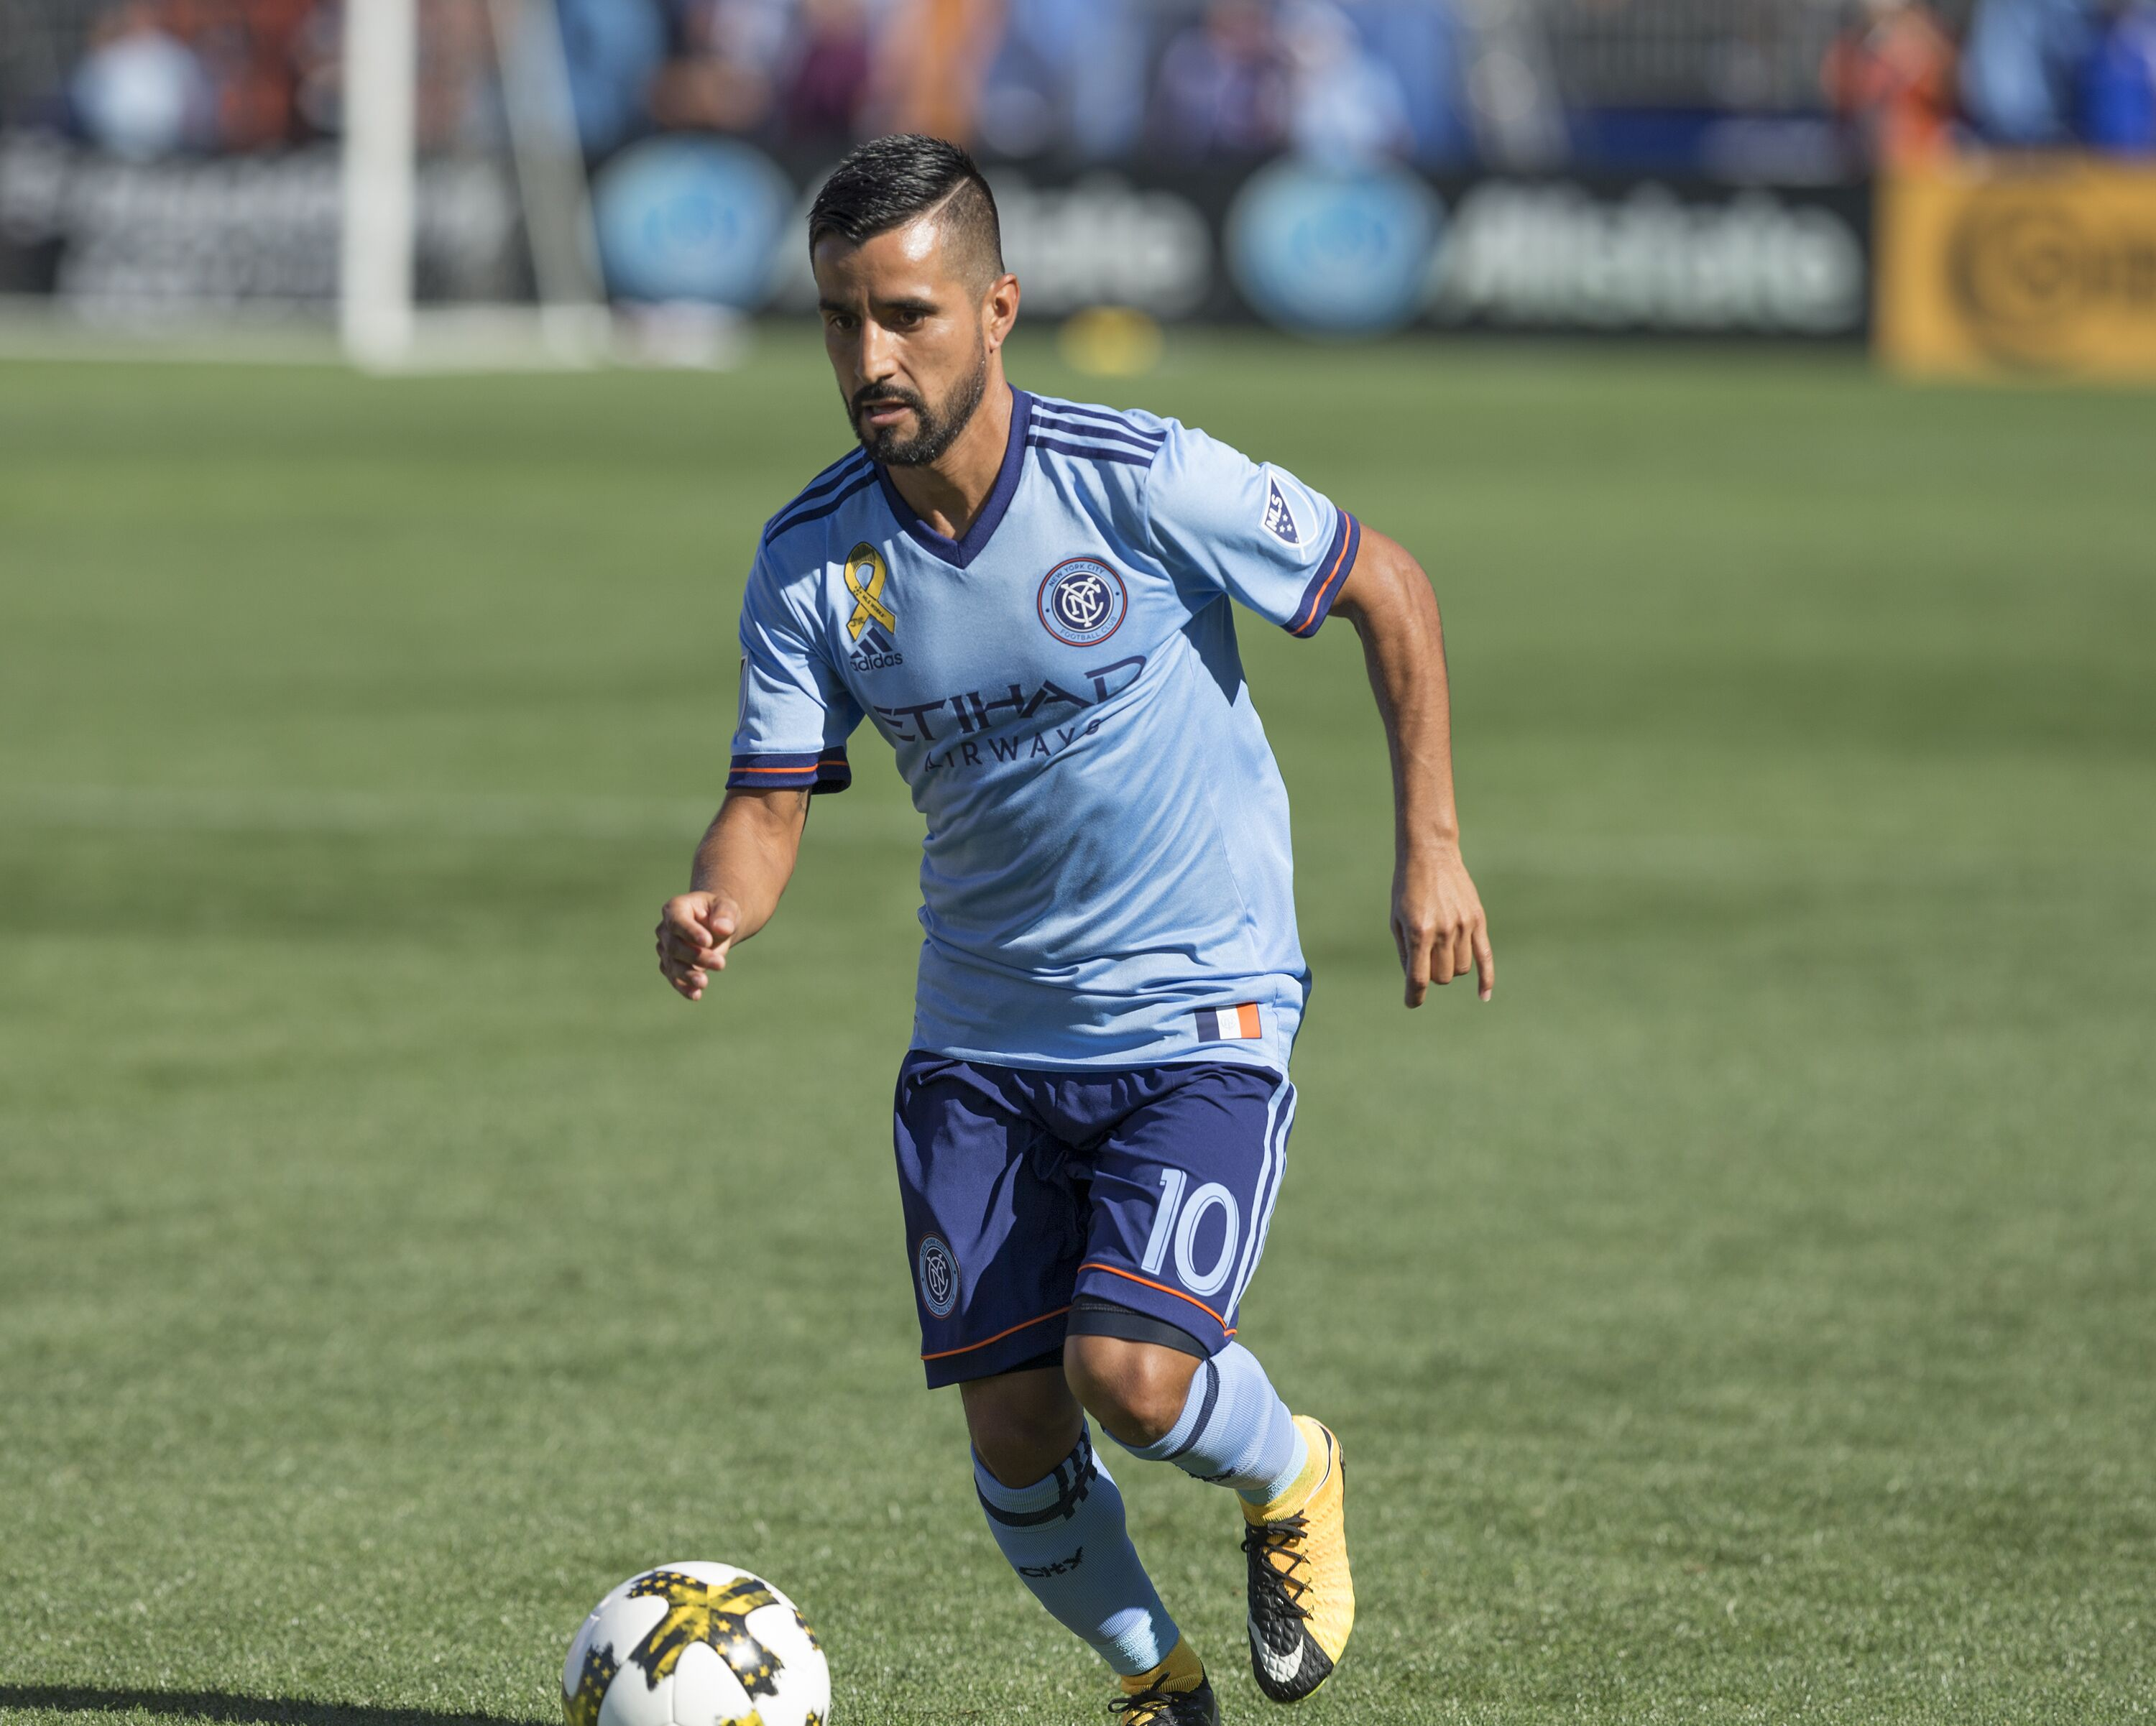 853327364-maxi-moralez-10-of-nyc-fc-controls-ball-during-mls-regular.jpg